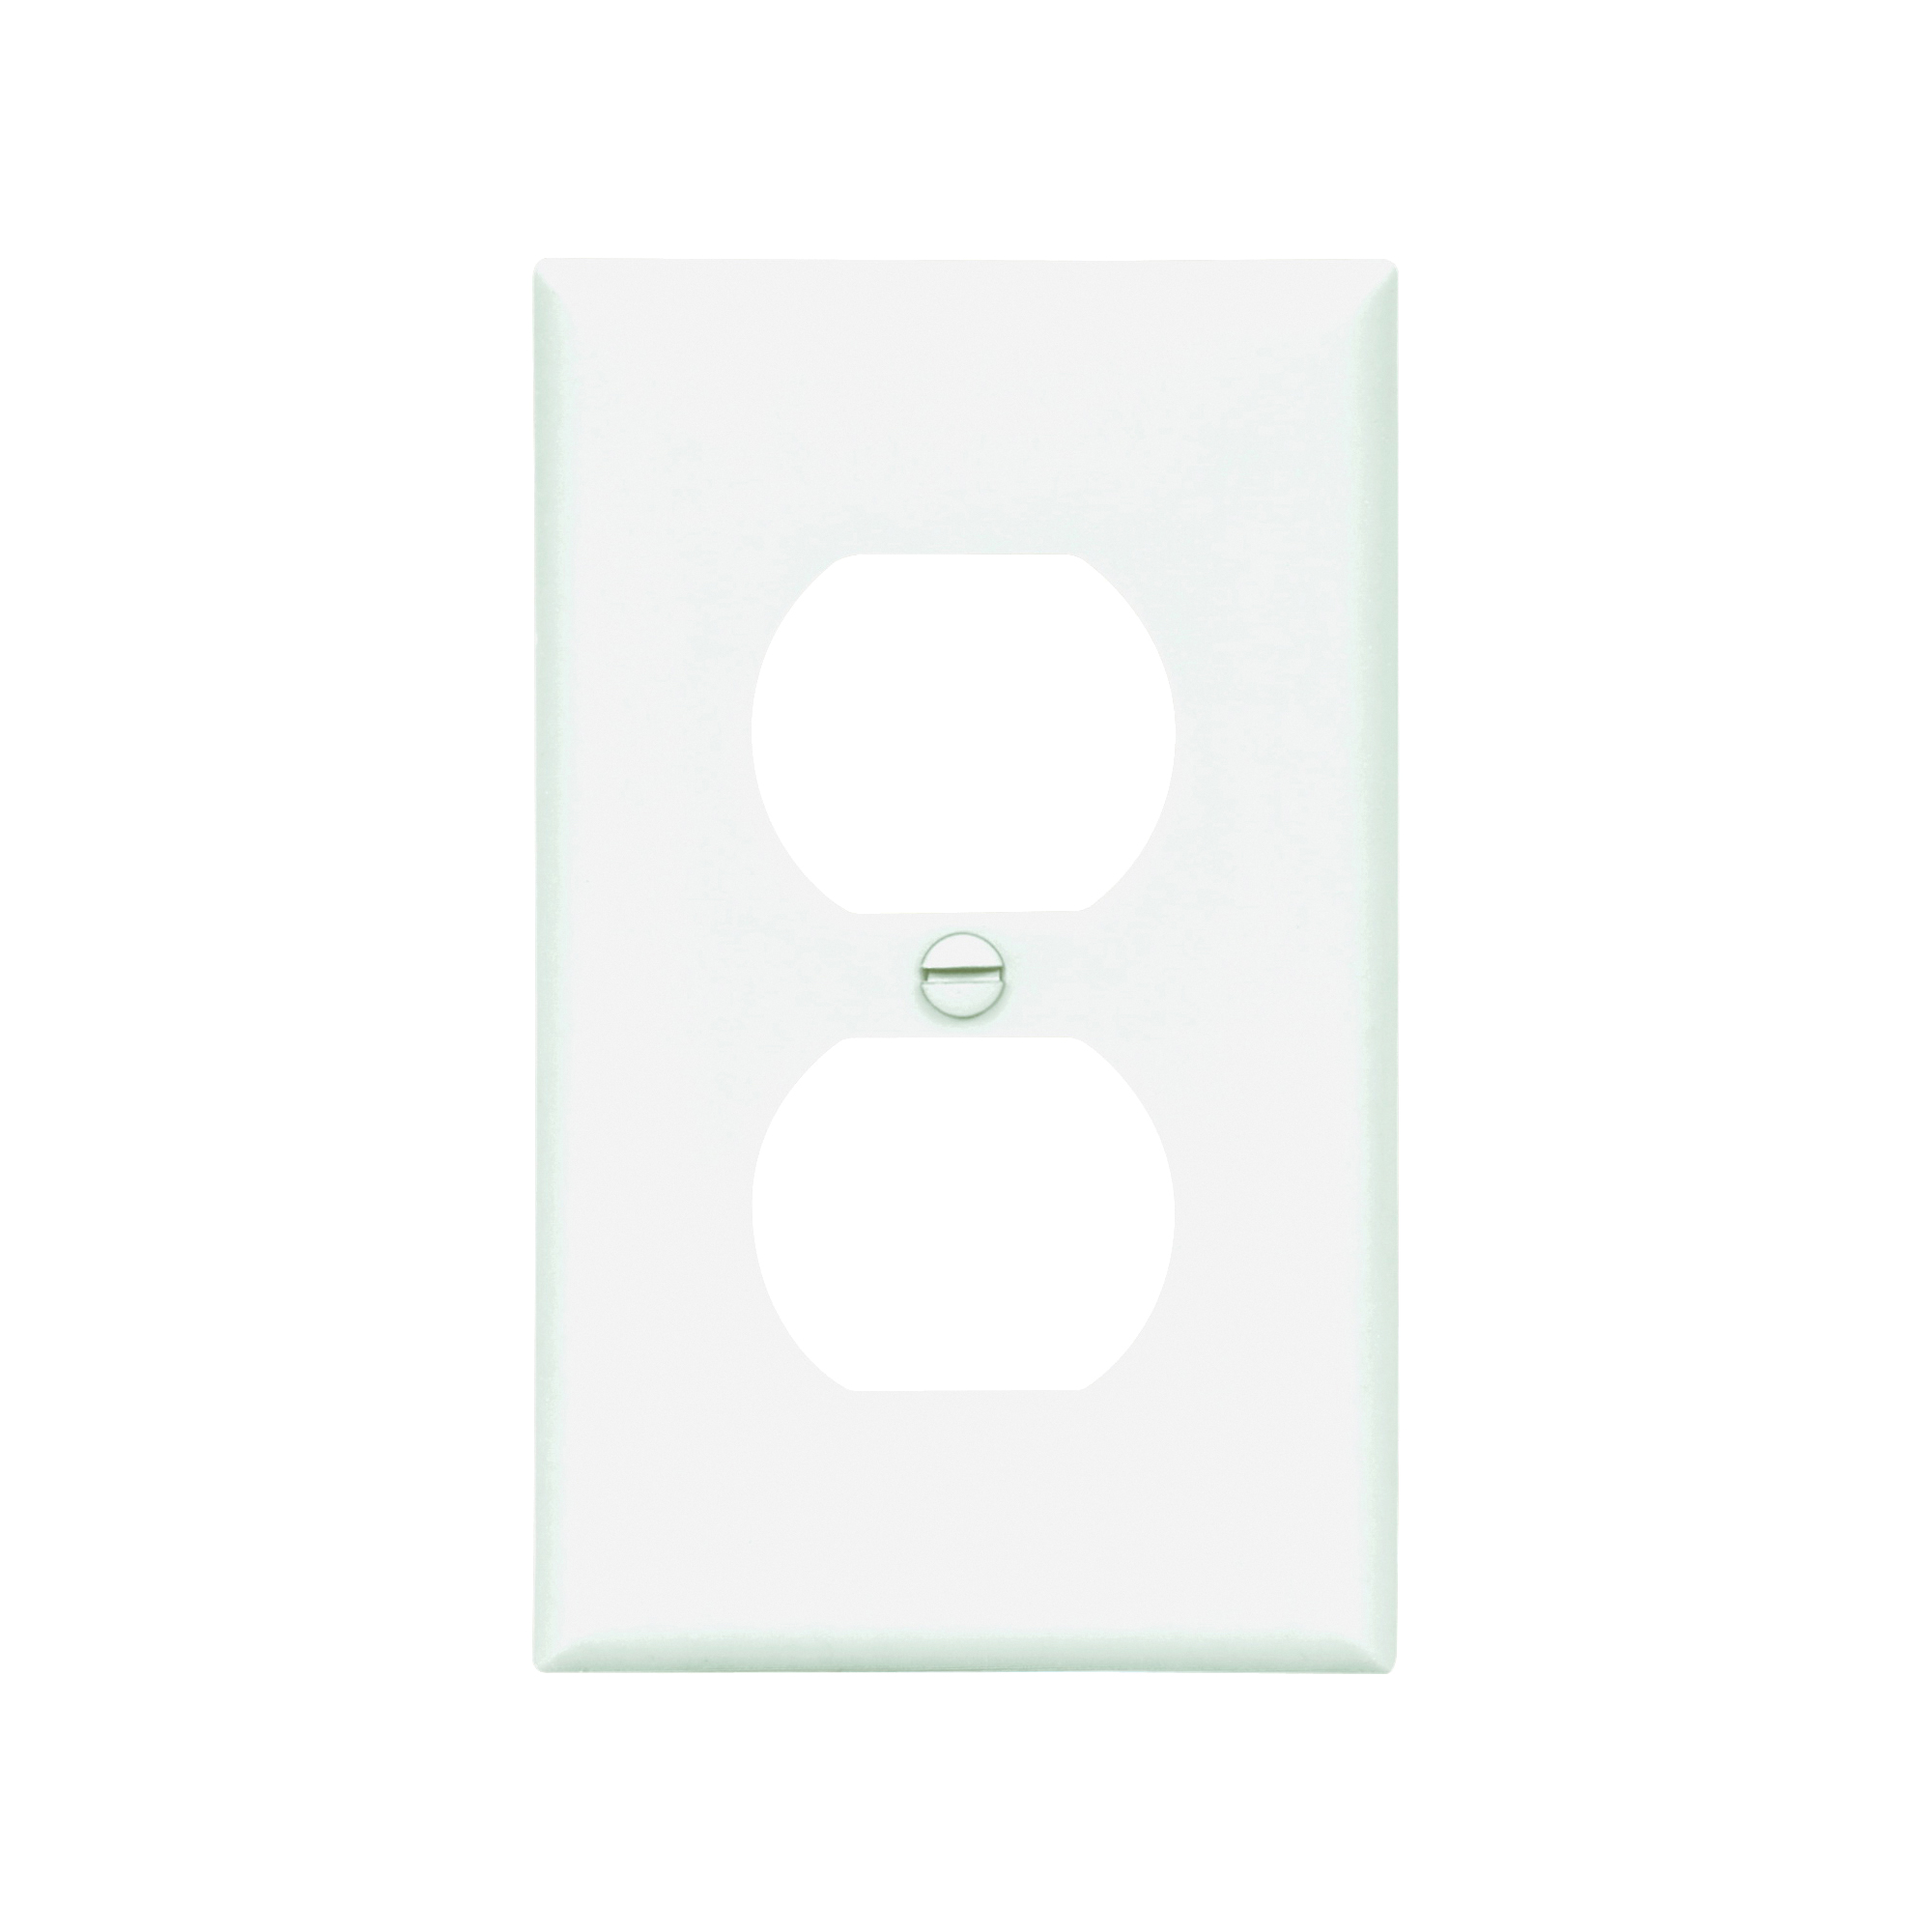 Picture of Eaton Wiring Devices 5132W Wallplate, 4-1/2 in L, 2-3/4 in W, 1-Gang, Nylon, White, High-Gloss, Flush Mounting